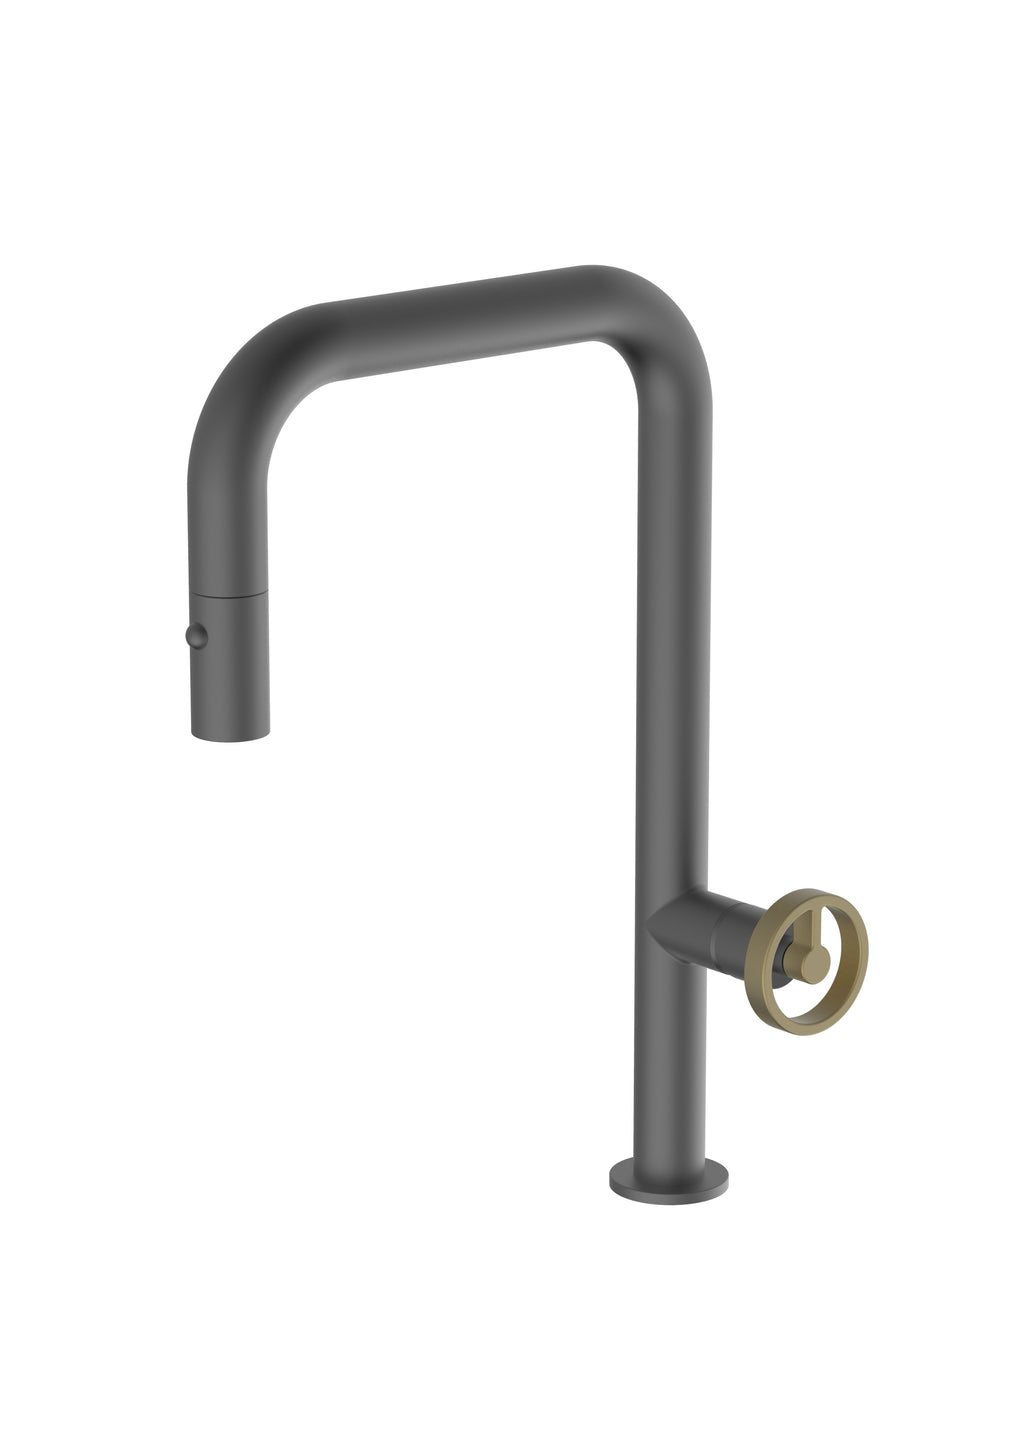 Capo Anthracite Mix & Match, pull-down kitchen mixer tap